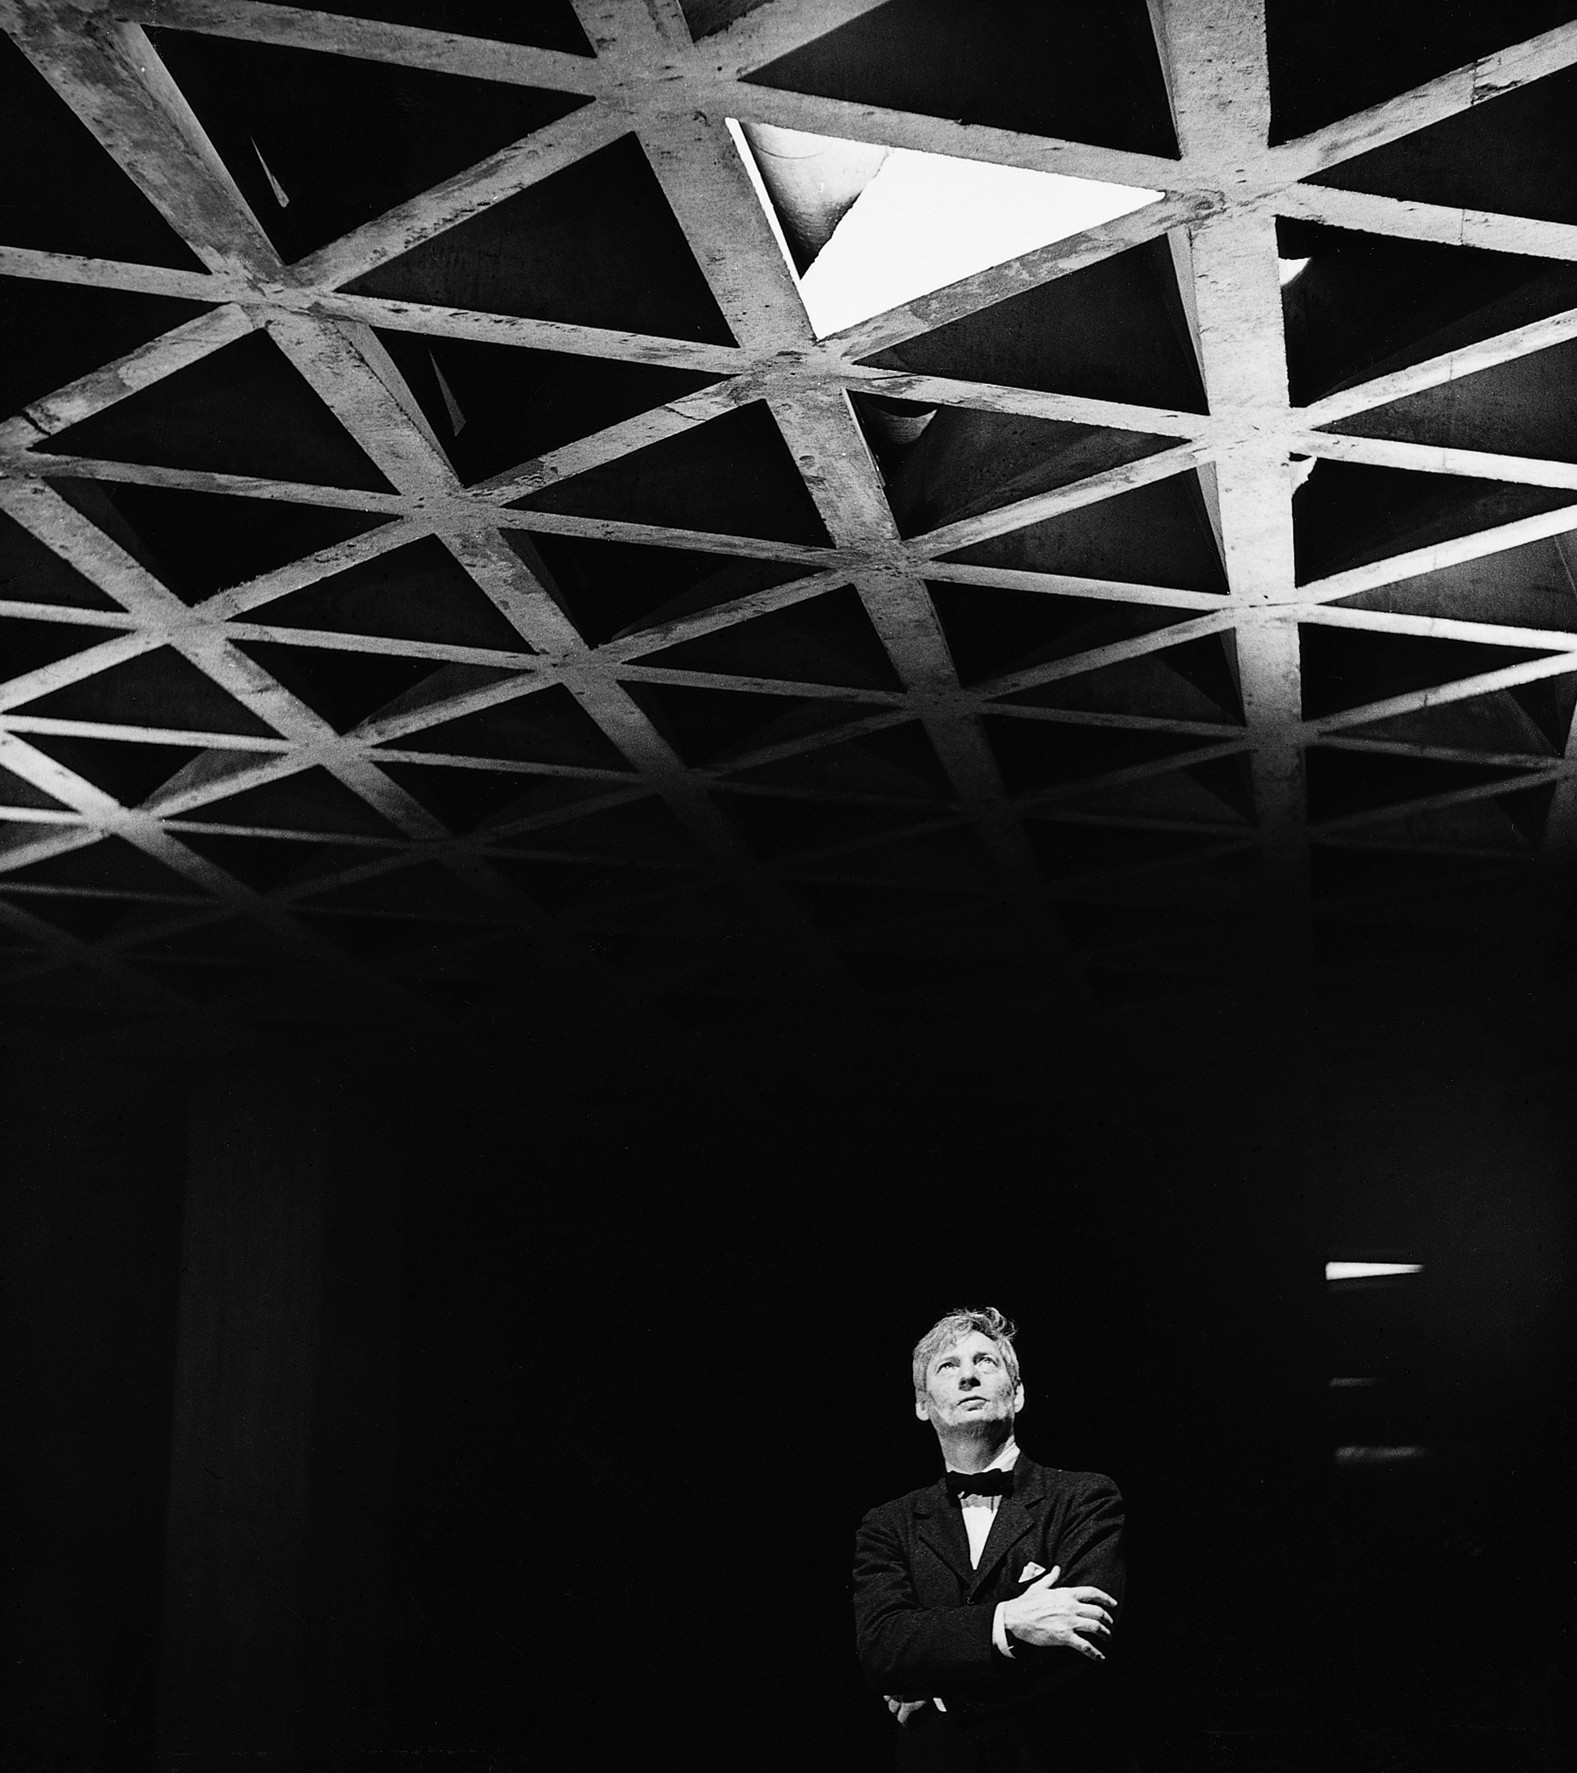 light and shadow light matters louis kahn and the power of shadow archdaily 505